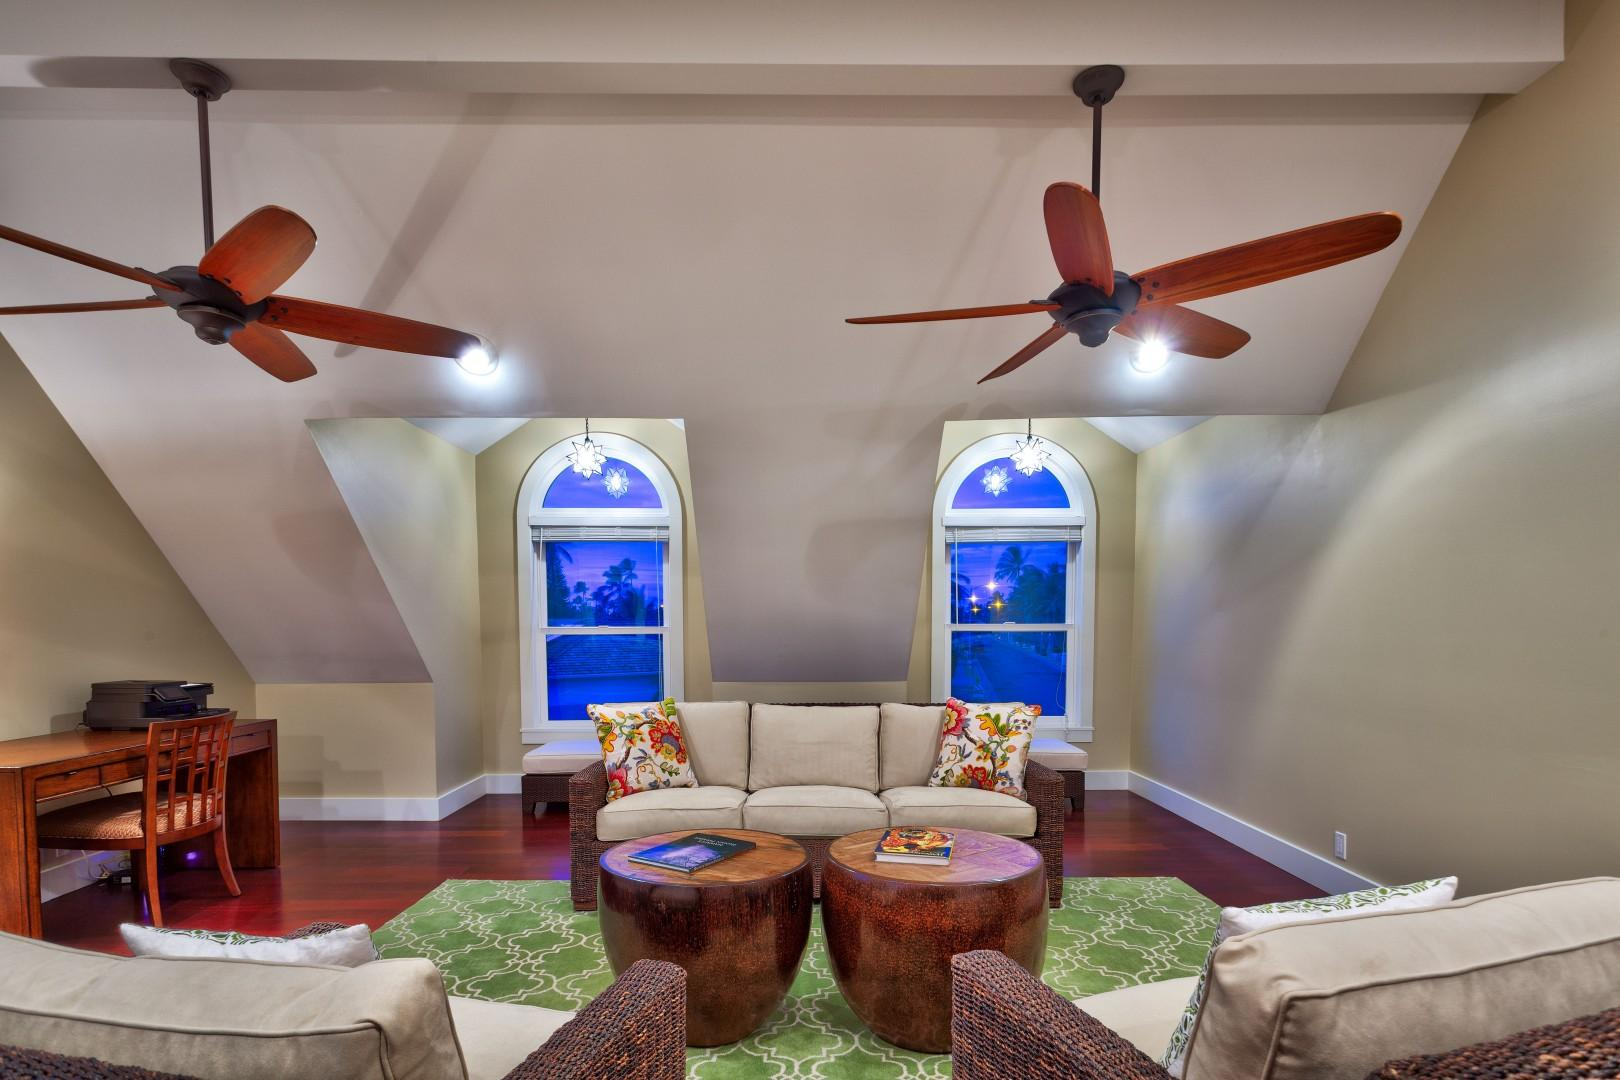 Enjoy your privacy in the master bedroom seating area, with a desk, sitting area with an air conditioner.